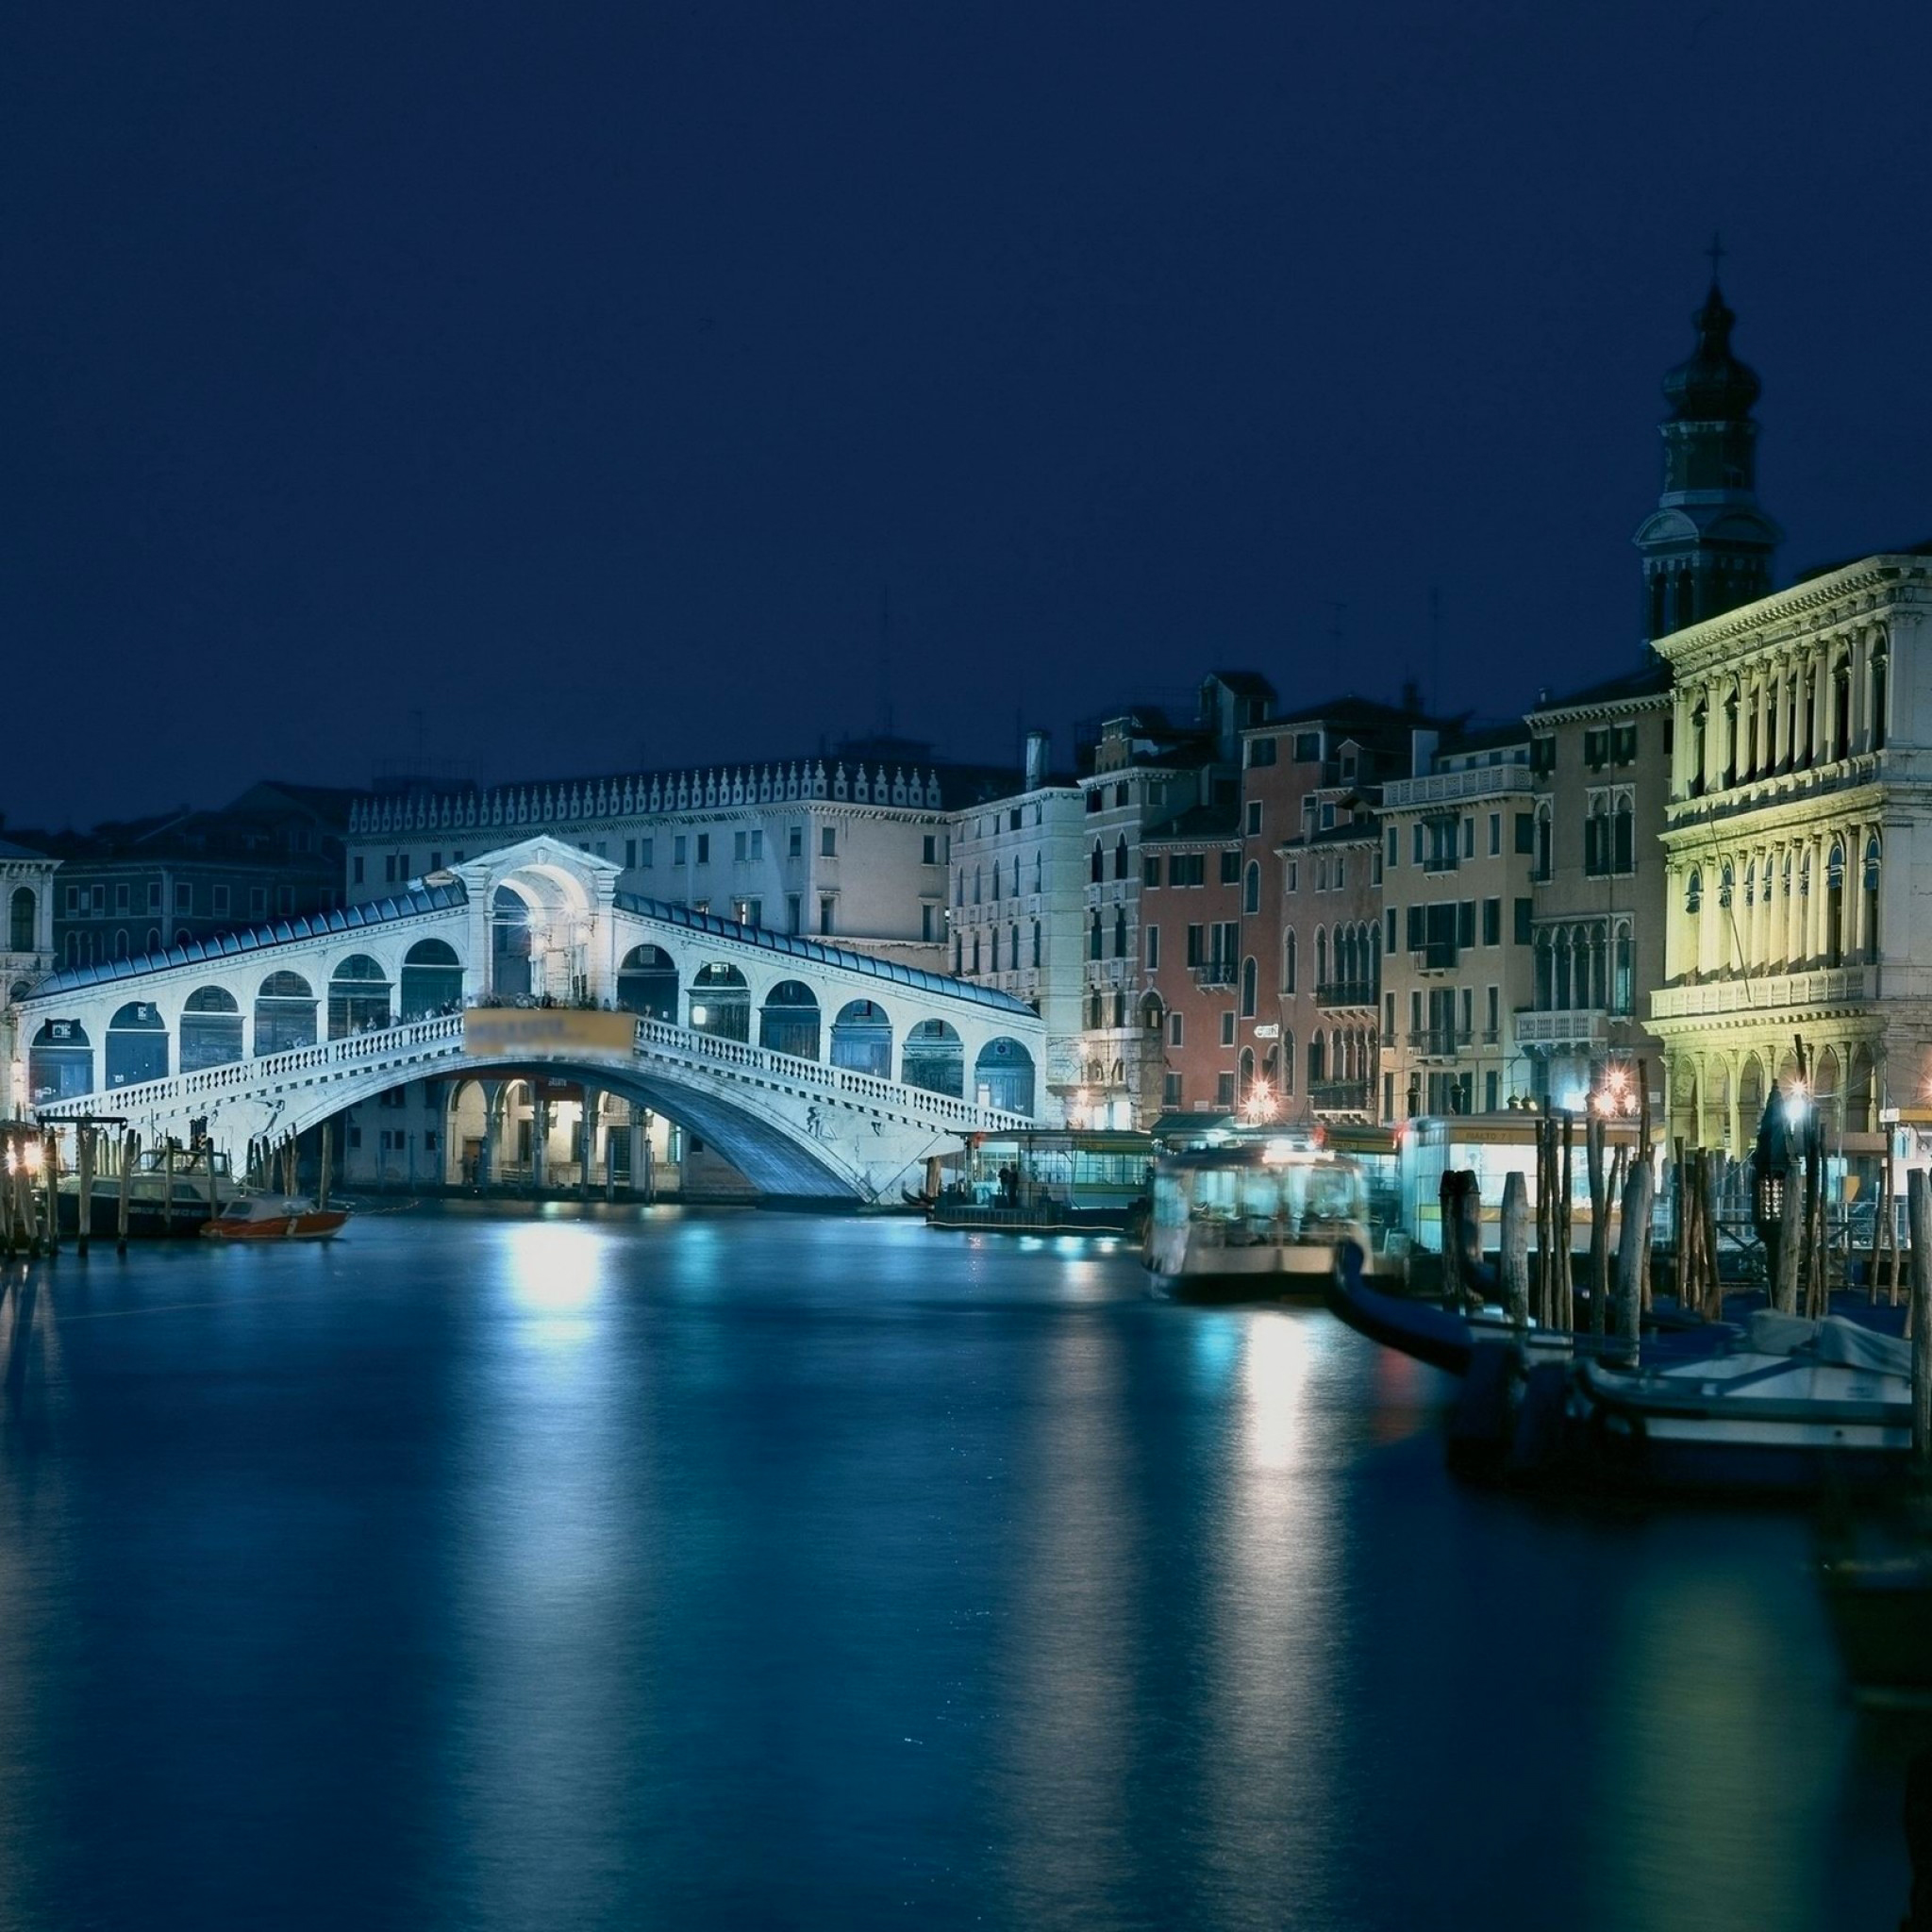 Venise Italie architecture 3Wallpapers iPad Venise Italie architecture   iPad